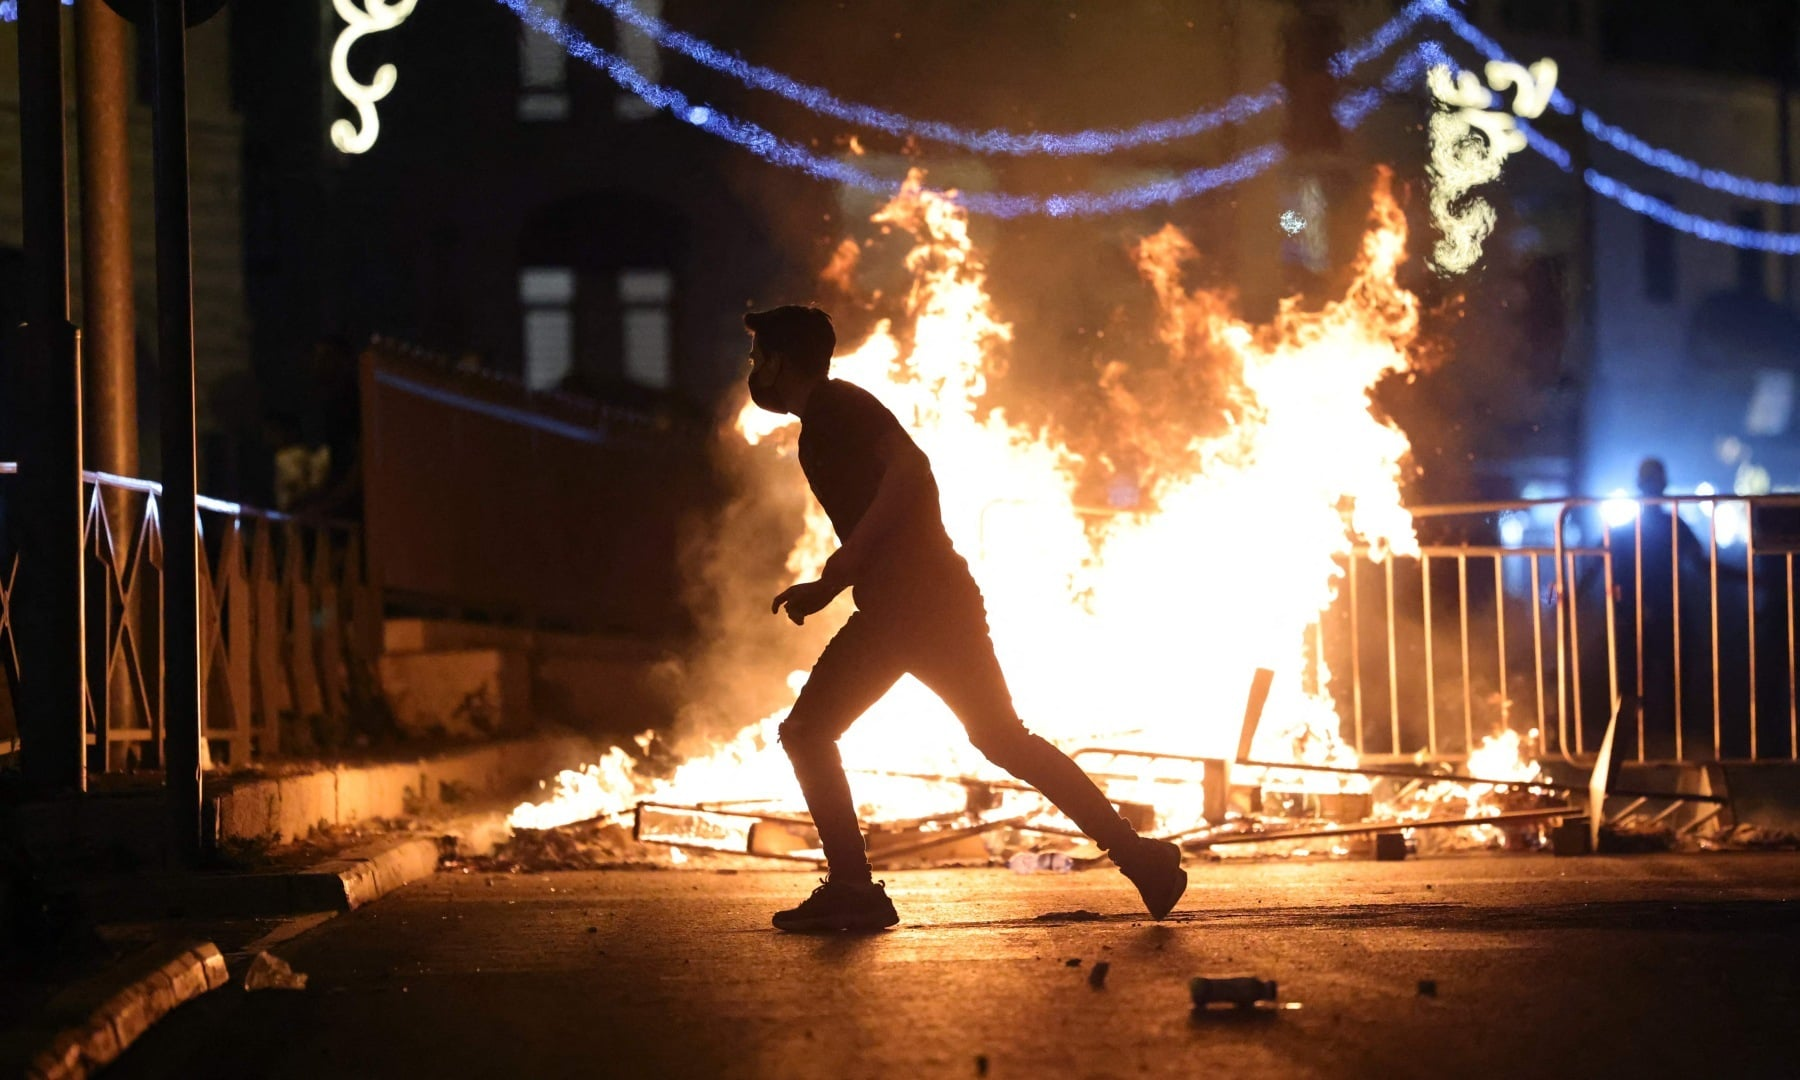 A Palestinian protester runs near a burning barricade in Jerusalem's Old City on May 8. — AFP